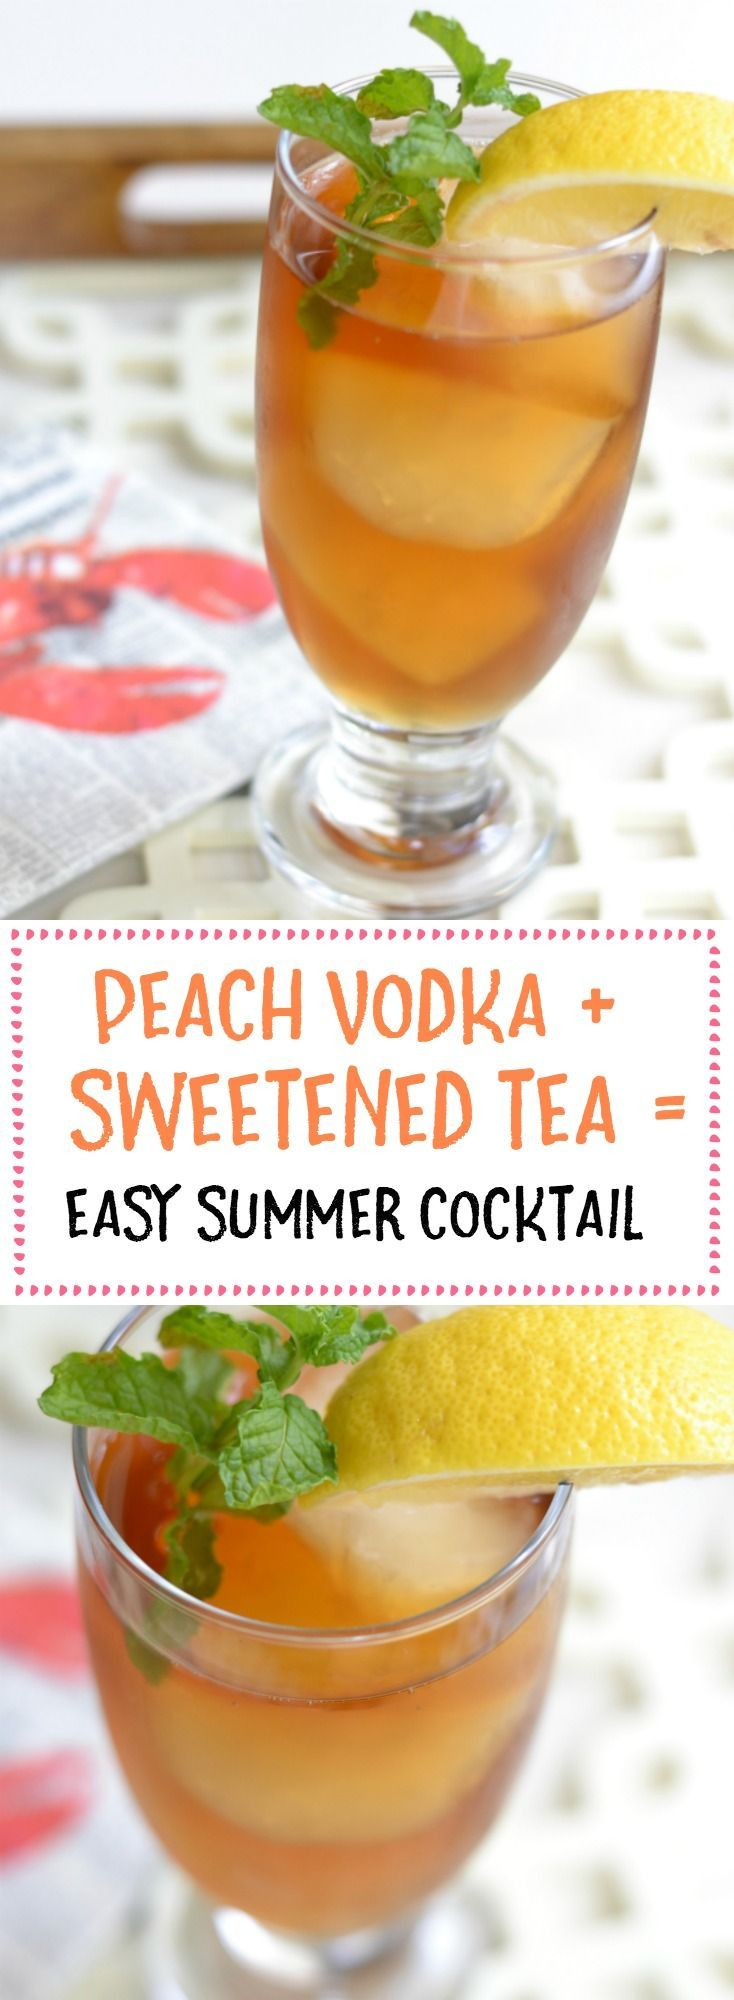 Light Summer Cocktail Recipes: 25+ Best Birthday Cocktail Ideas On Pinterest